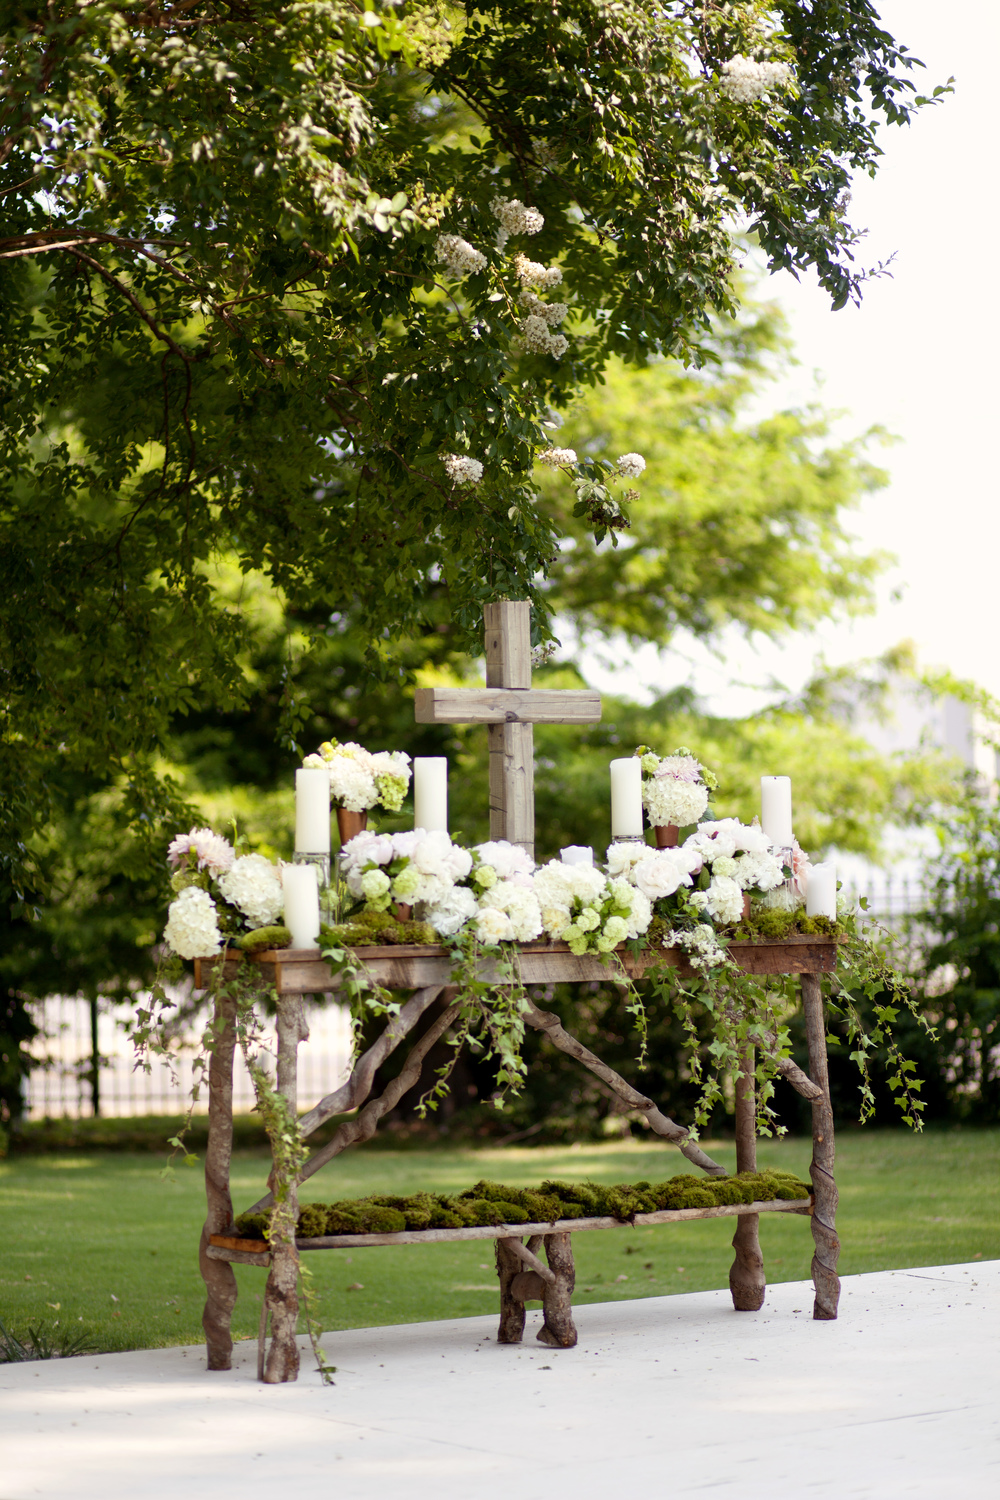 Rustic Altar table set up on the grounds of the historic Hunt Phelan Home. Dahlias, Viburnum, Hydrangea, Mosses and Ivy